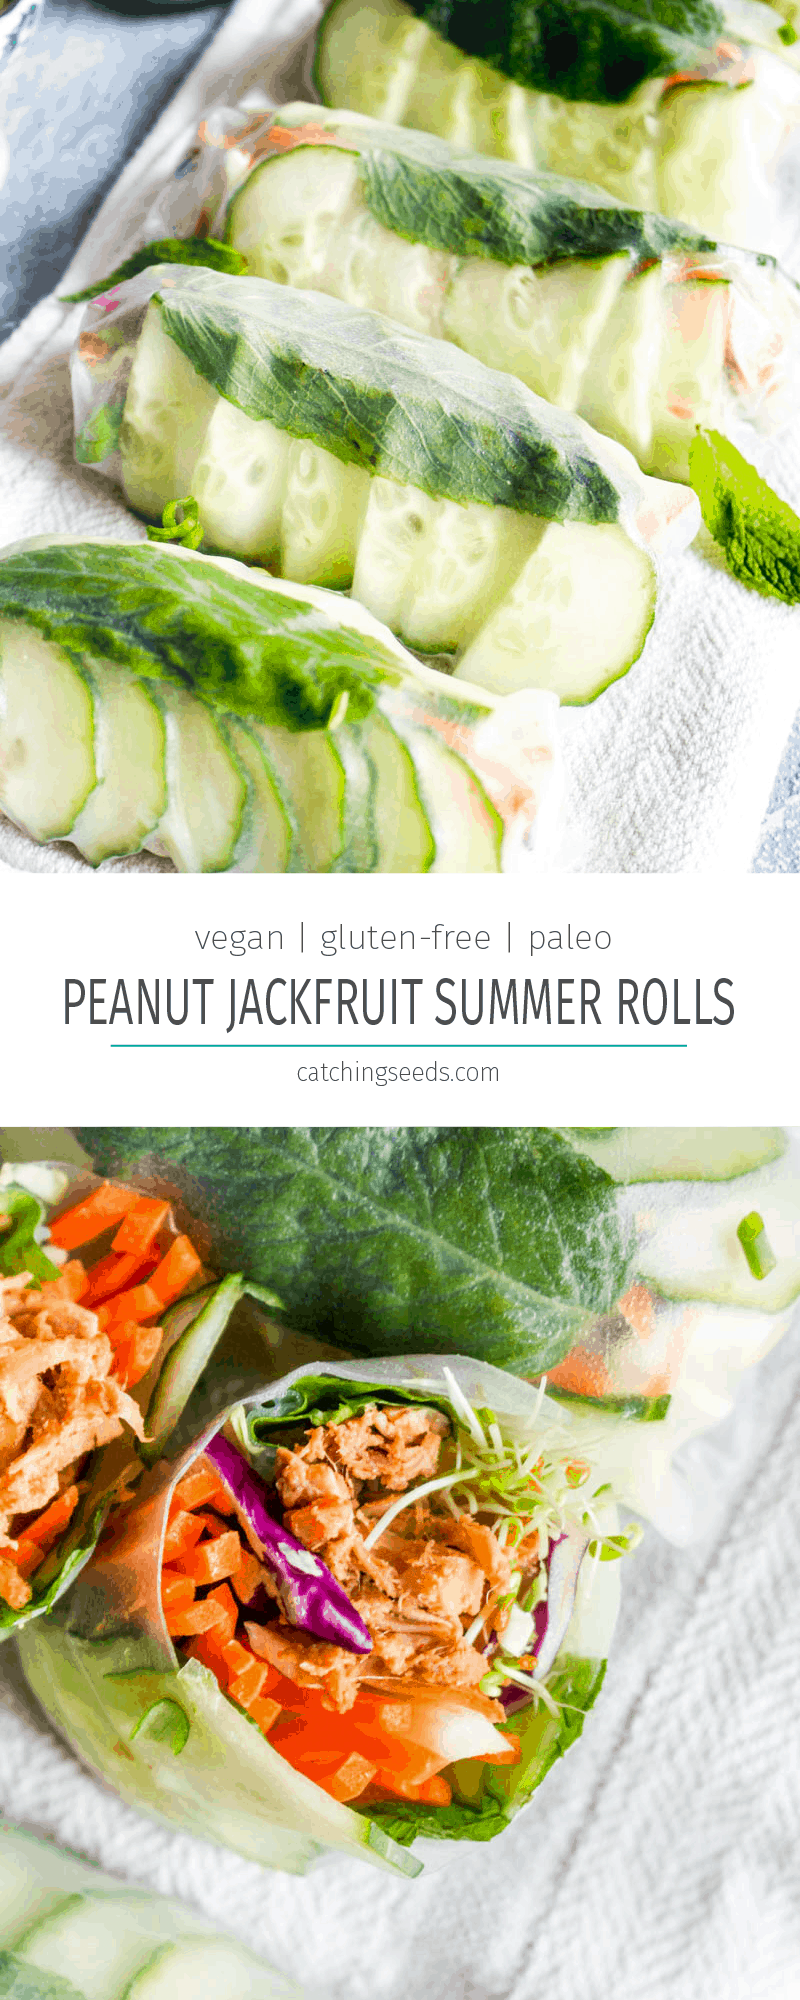 Peanut Sauce Jackfruit Summer Rolls are made with a 5 minute peanut sauce, crunchy vegetables, and fragrant herbs! This healthy gluten free & vegan recipe is bursting at the seams with flavor! | CatchingSeeds.com